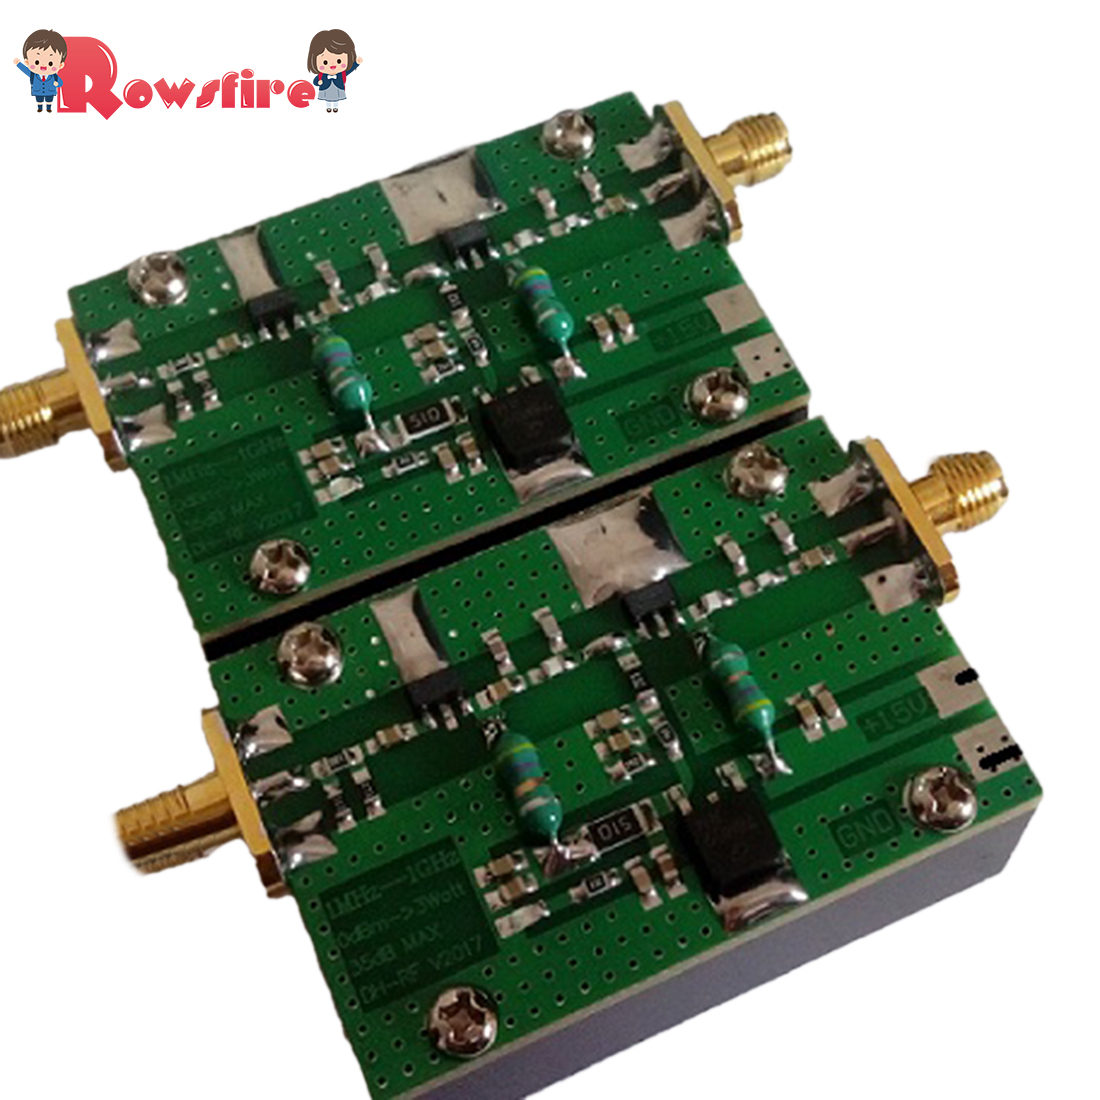 1MHz-1000MHZ 3W Radio-Frequency Amplifier HF FM VHF UHF Wideband RF Power Amplifier